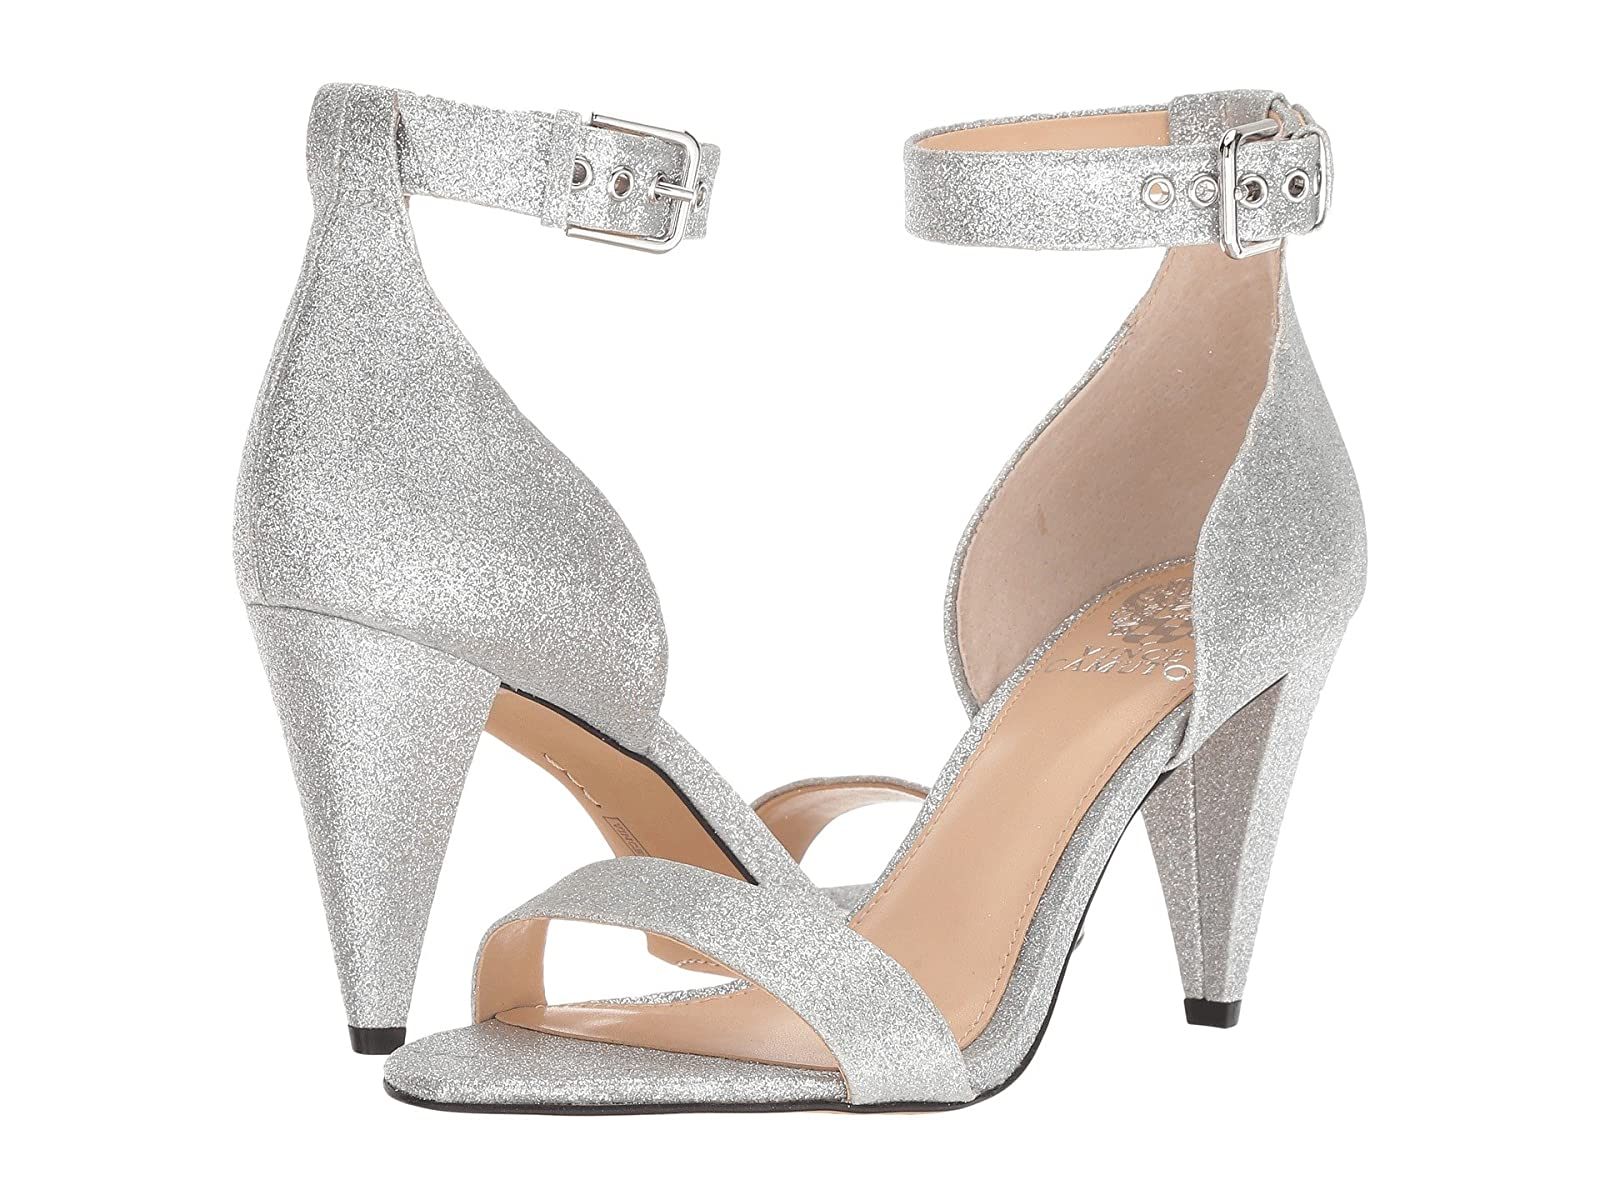 Vince Camuto CashaneAtmospheric grades have affordable shoes